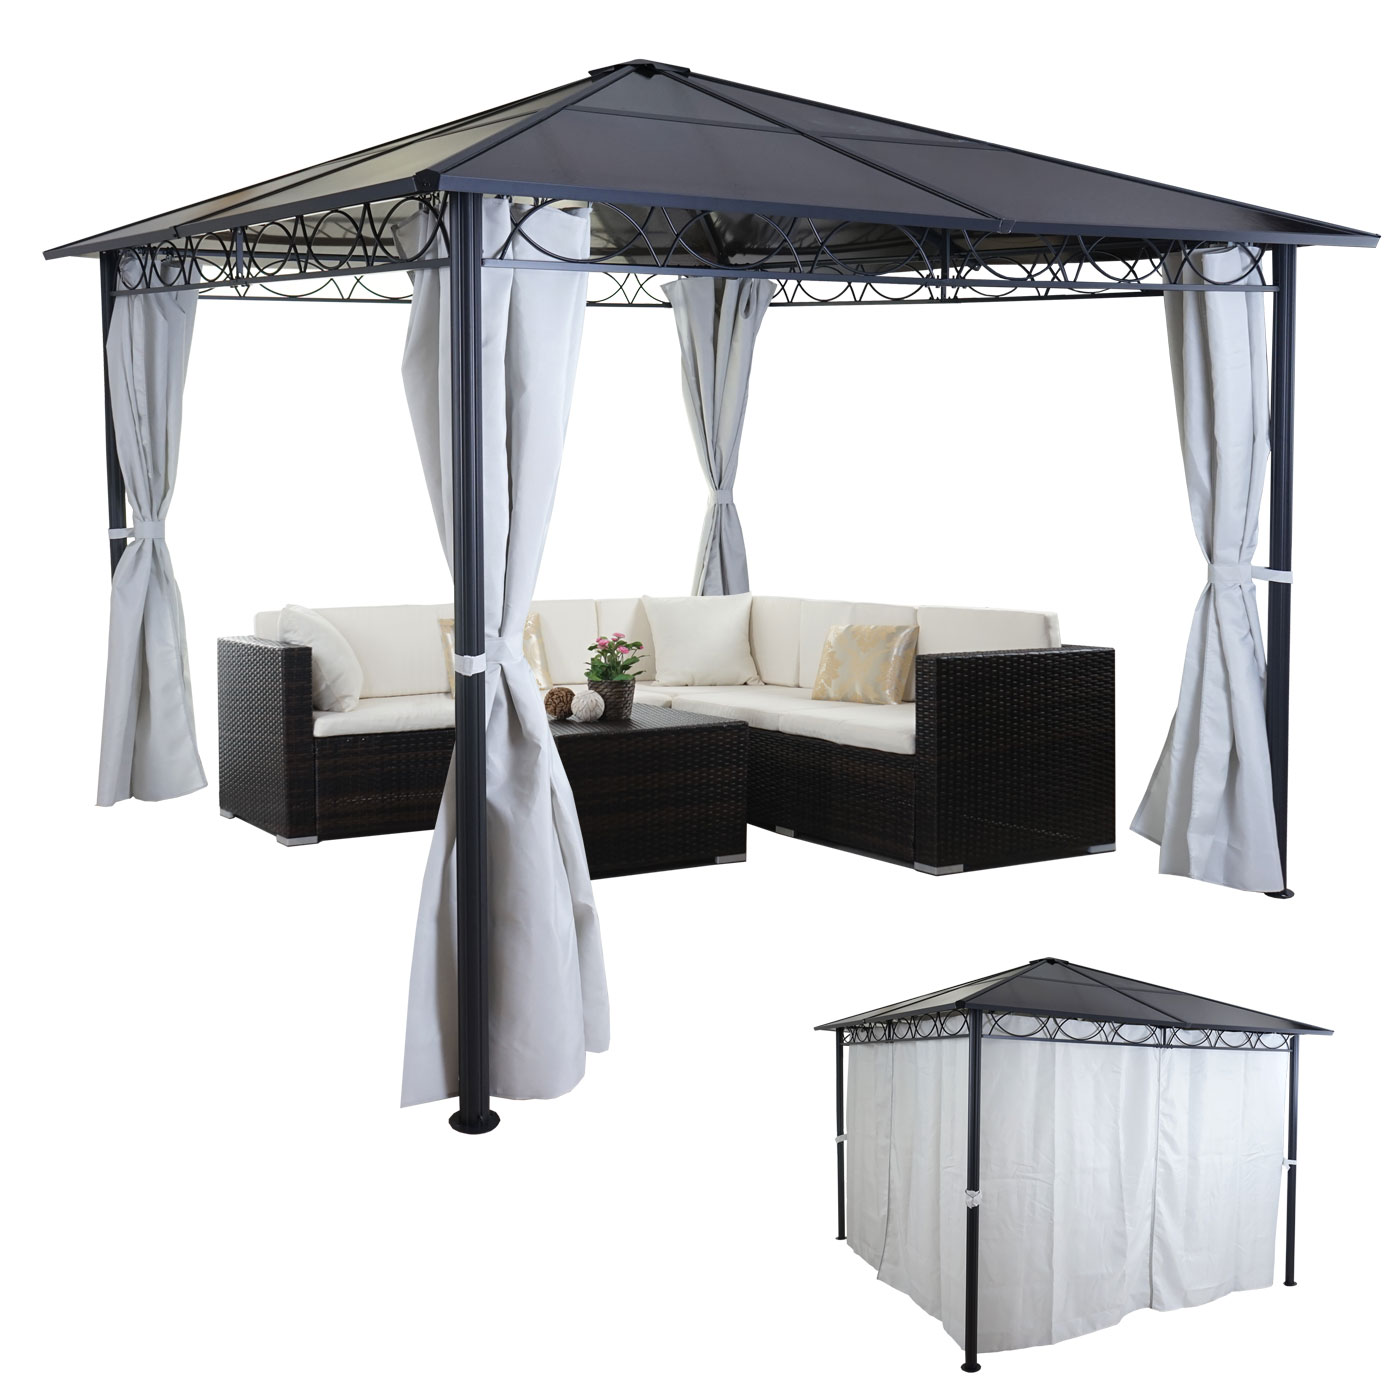 hardtop pergola hwc c77 garten pavillon kunststoff dach. Black Bedroom Furniture Sets. Home Design Ideas